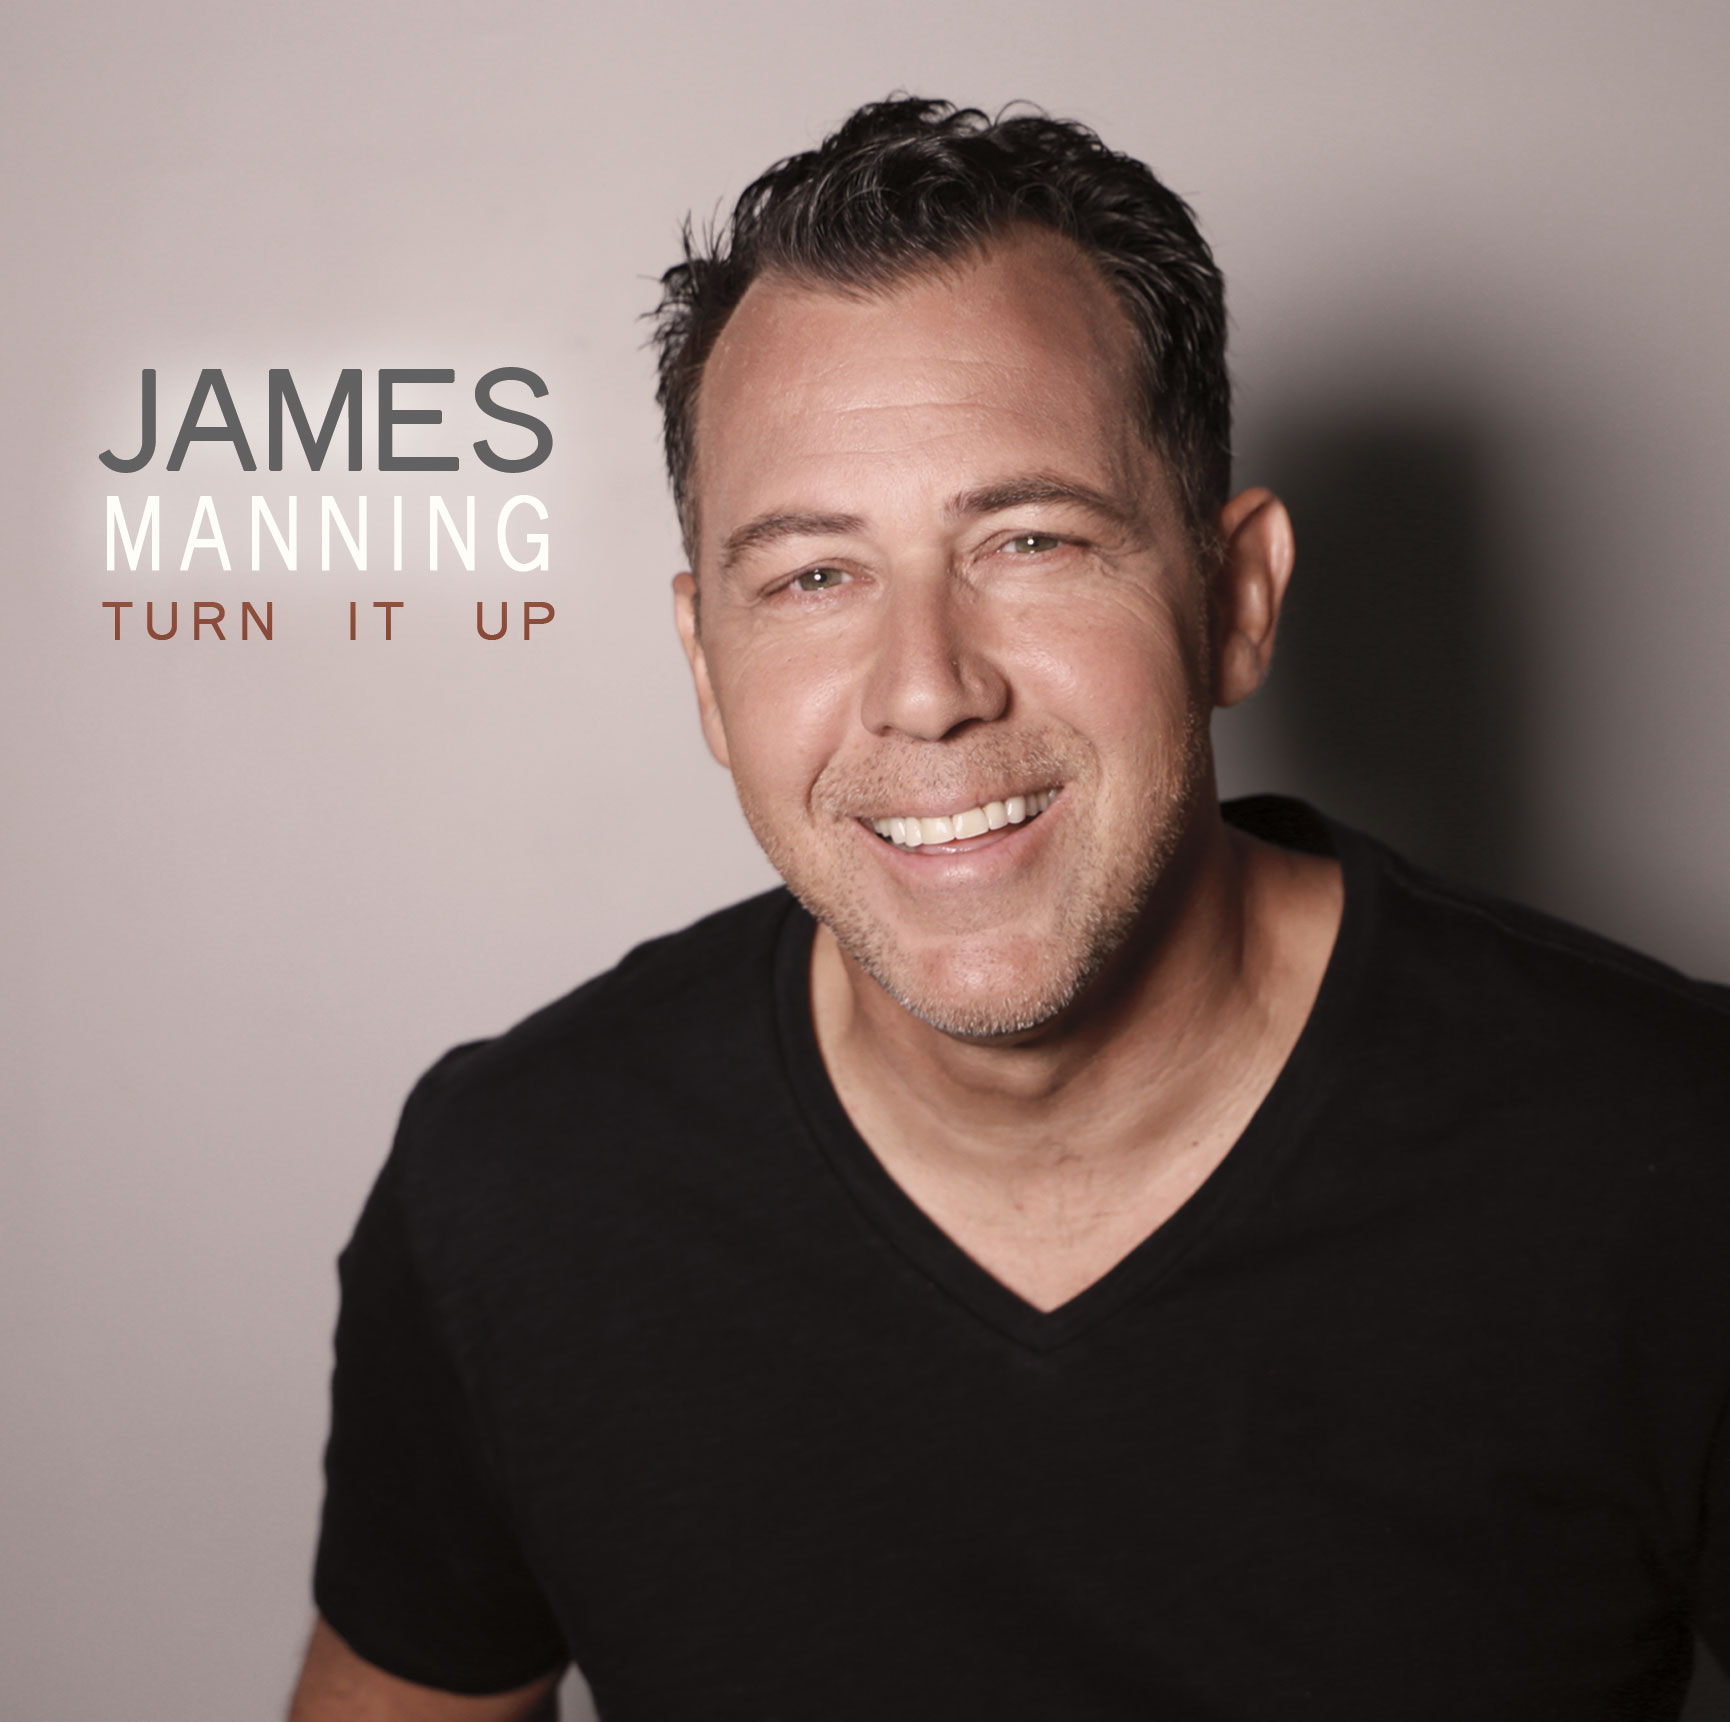 James Manning _Turn-It-Up-CD_jacket